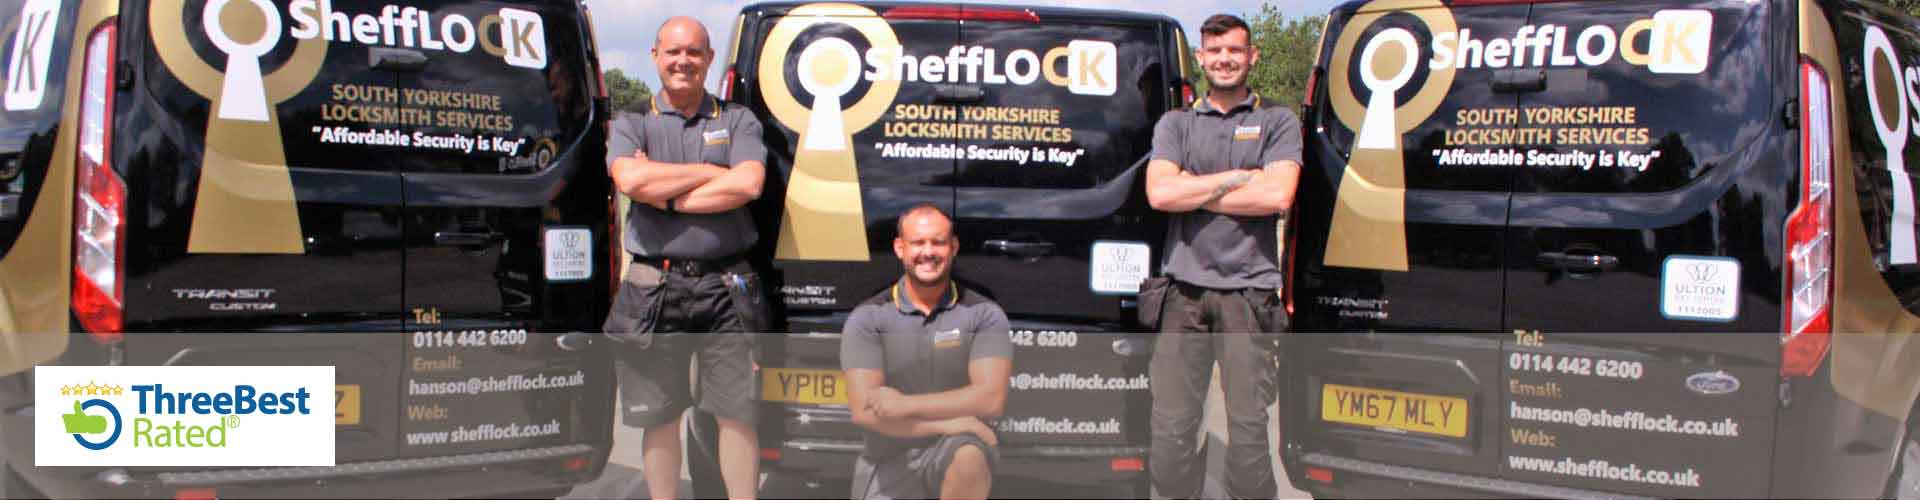 Dinnington Locksmith Services